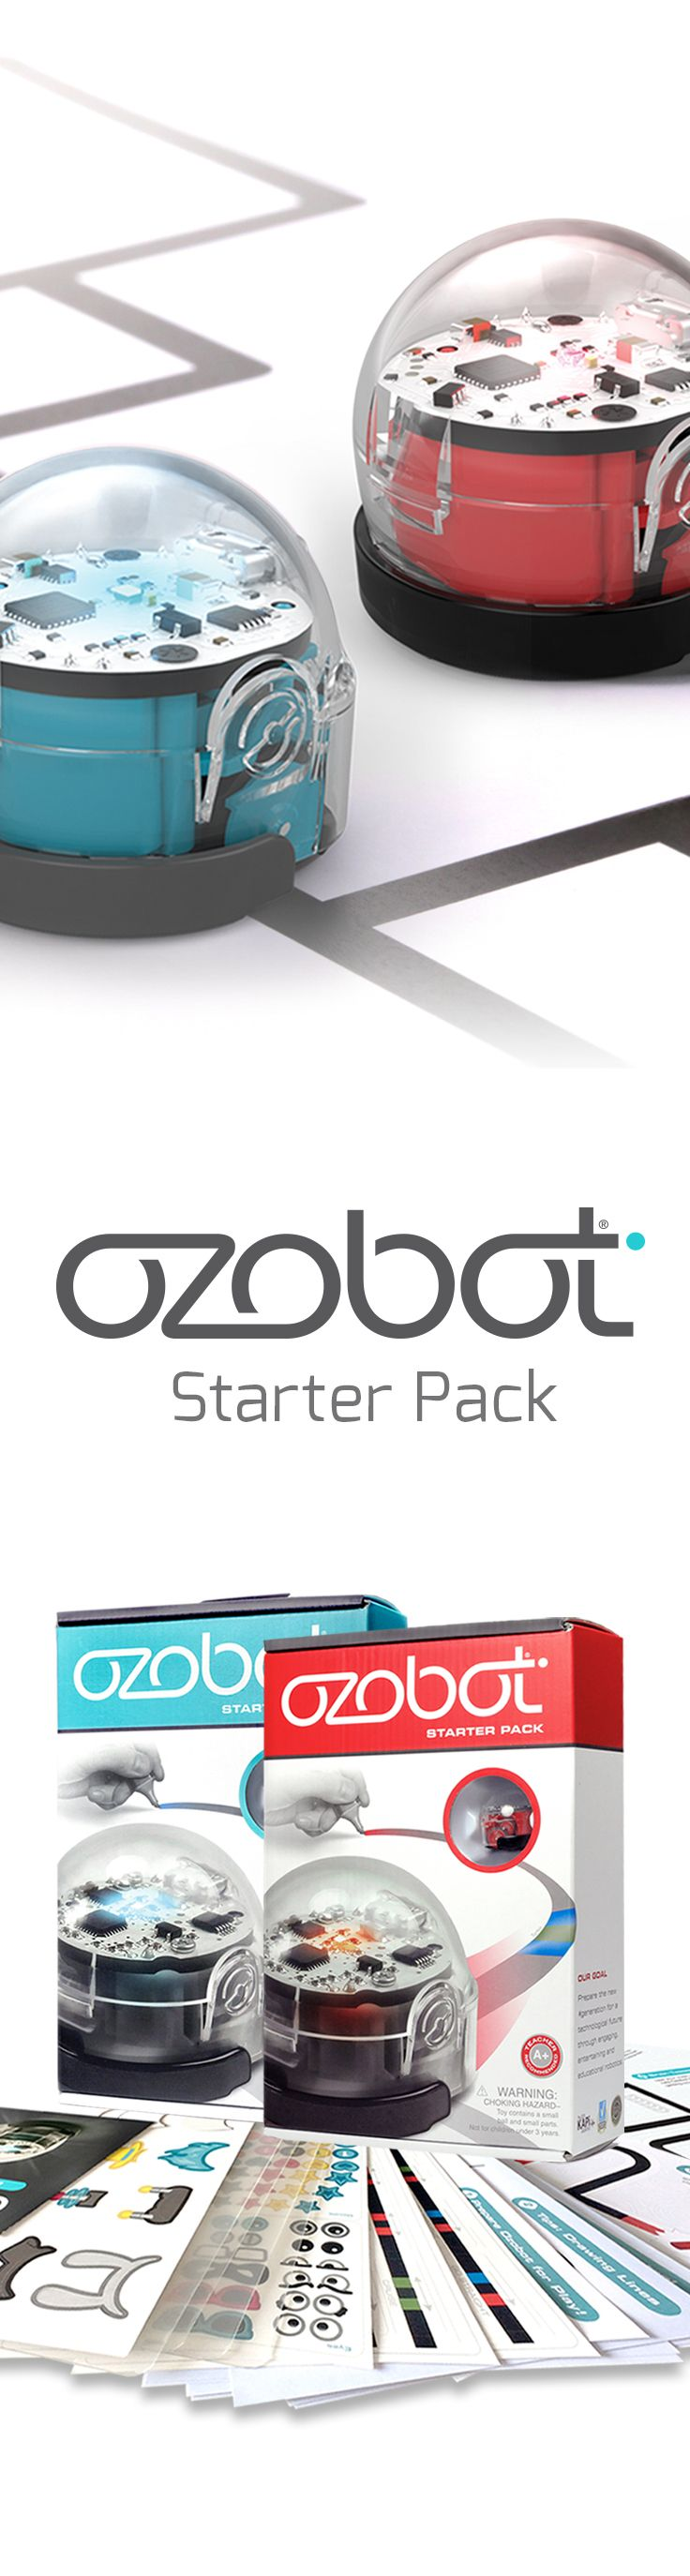 Bring your Ozobot to life with the Starter pack! Full of fun DIY activities and STEM challenges!